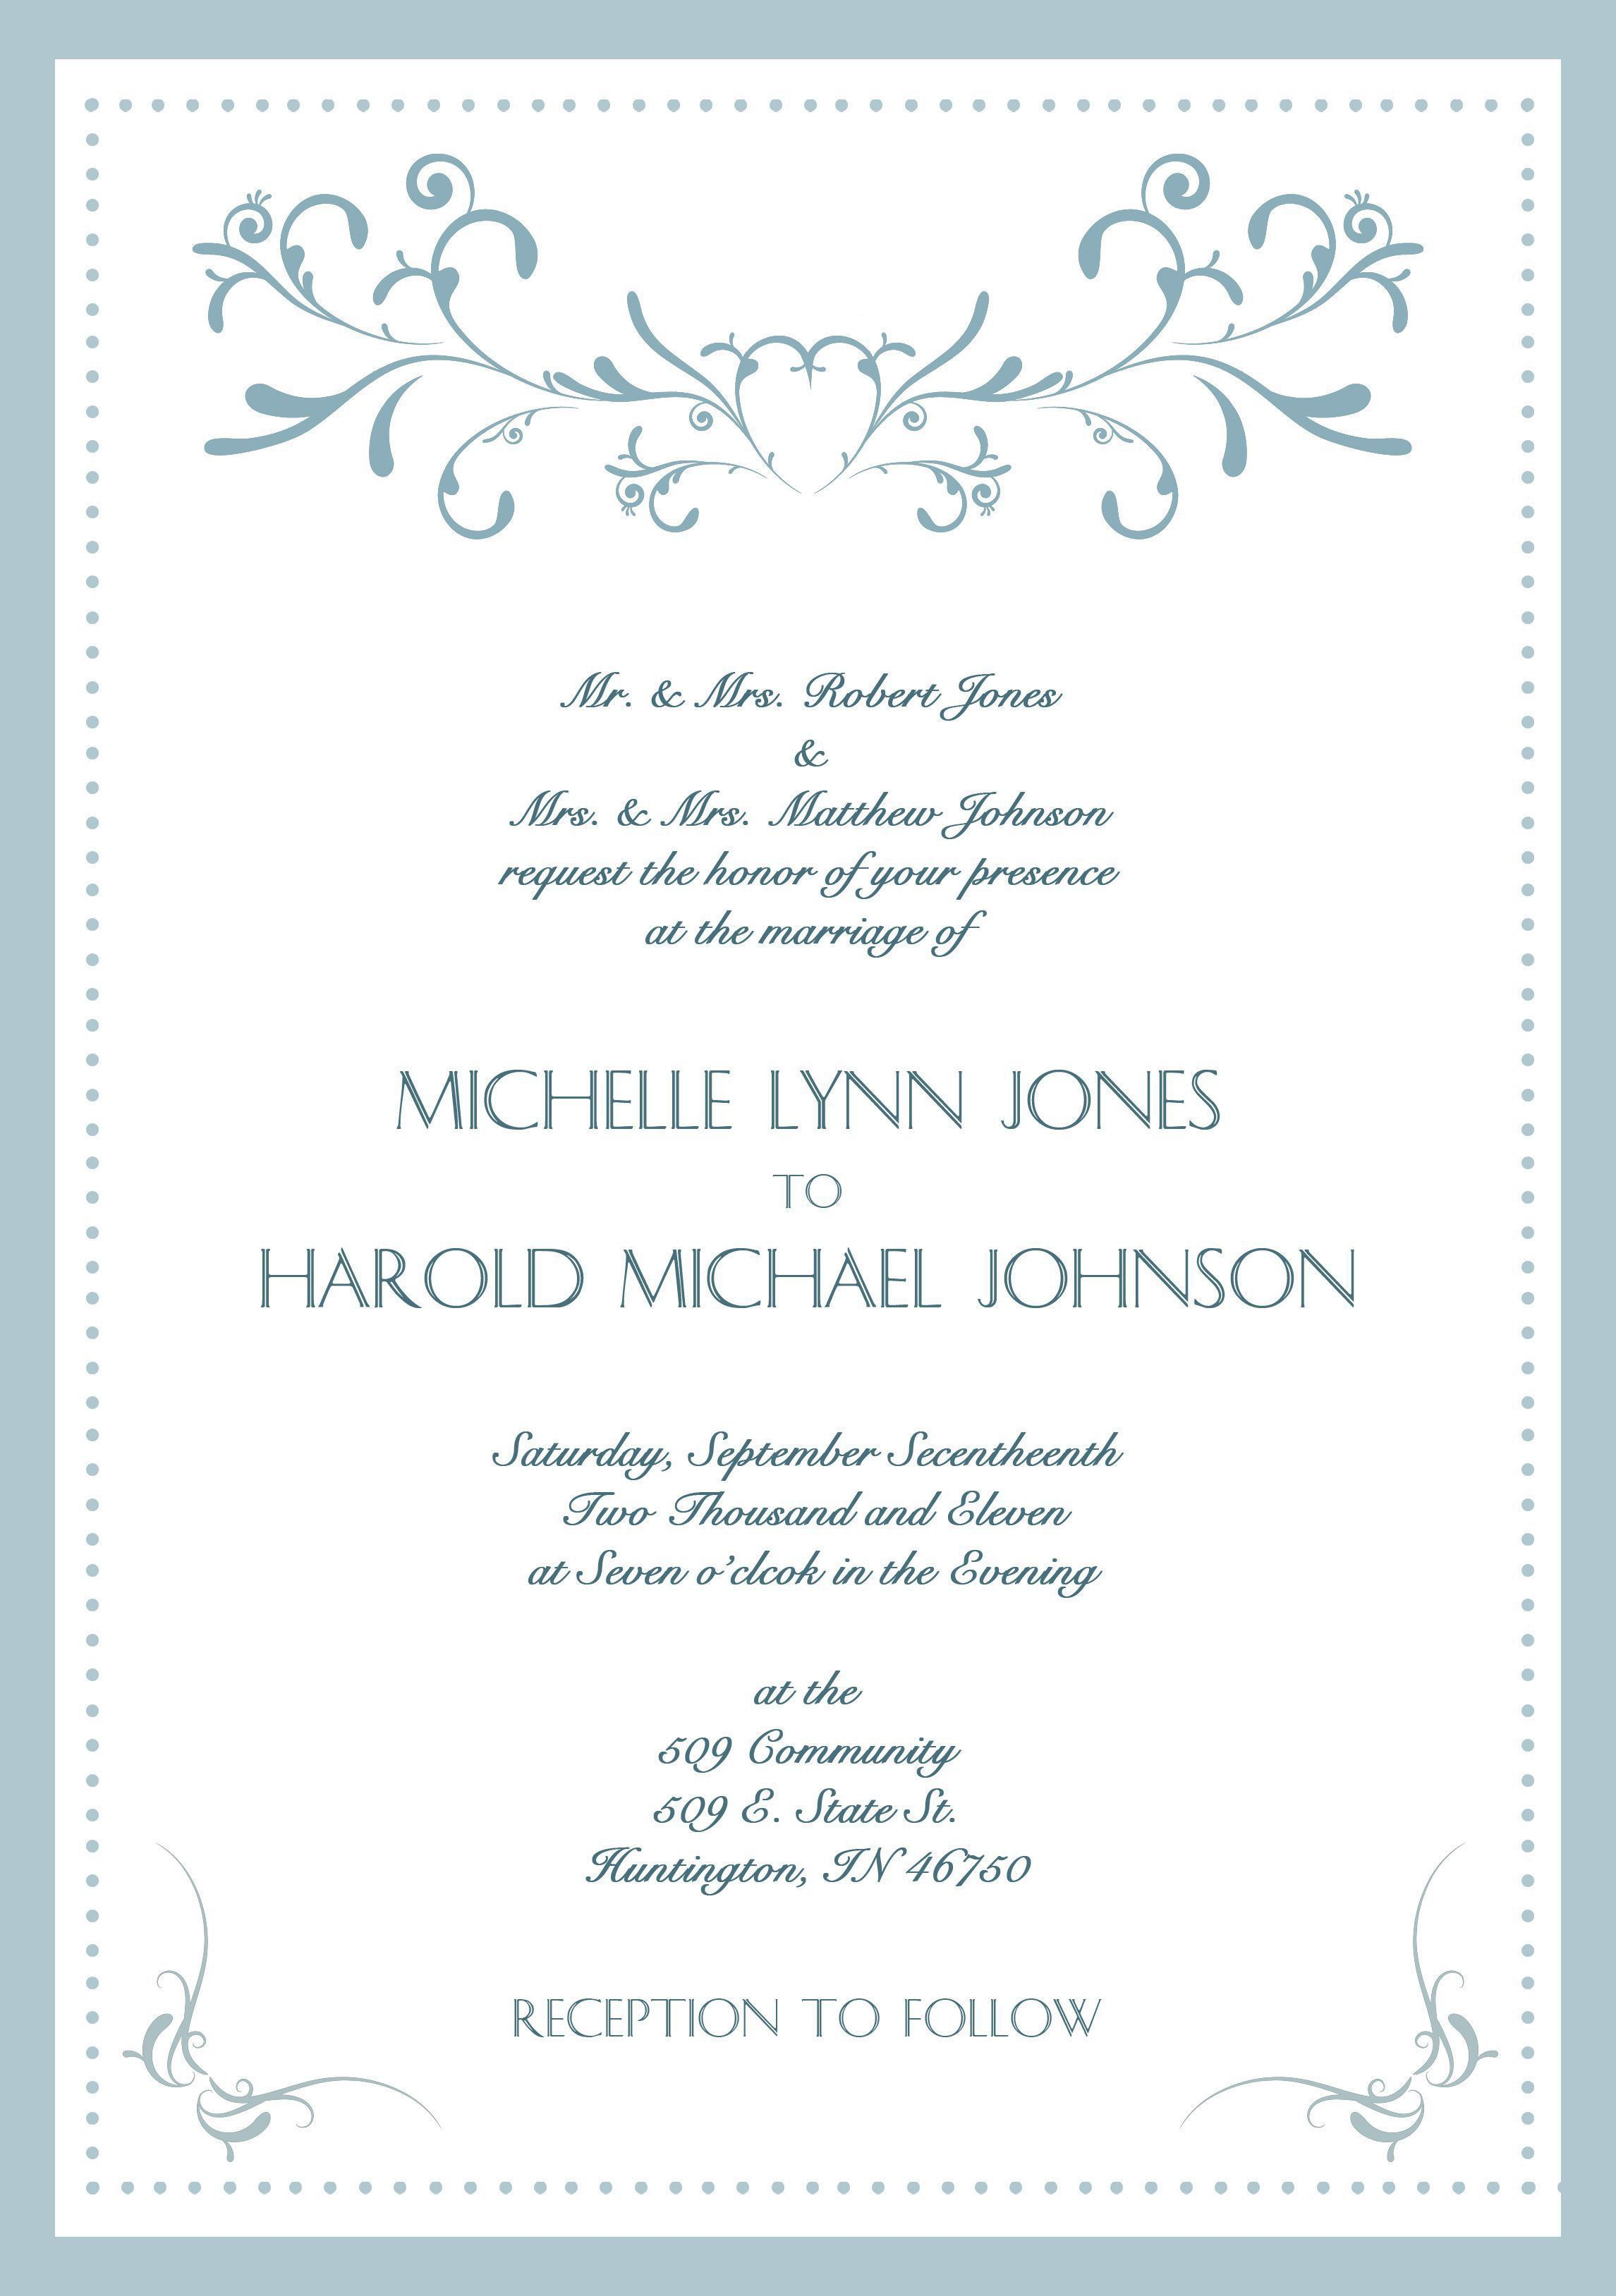 Sample Wedding Invitation Card With Images Sample Wedding